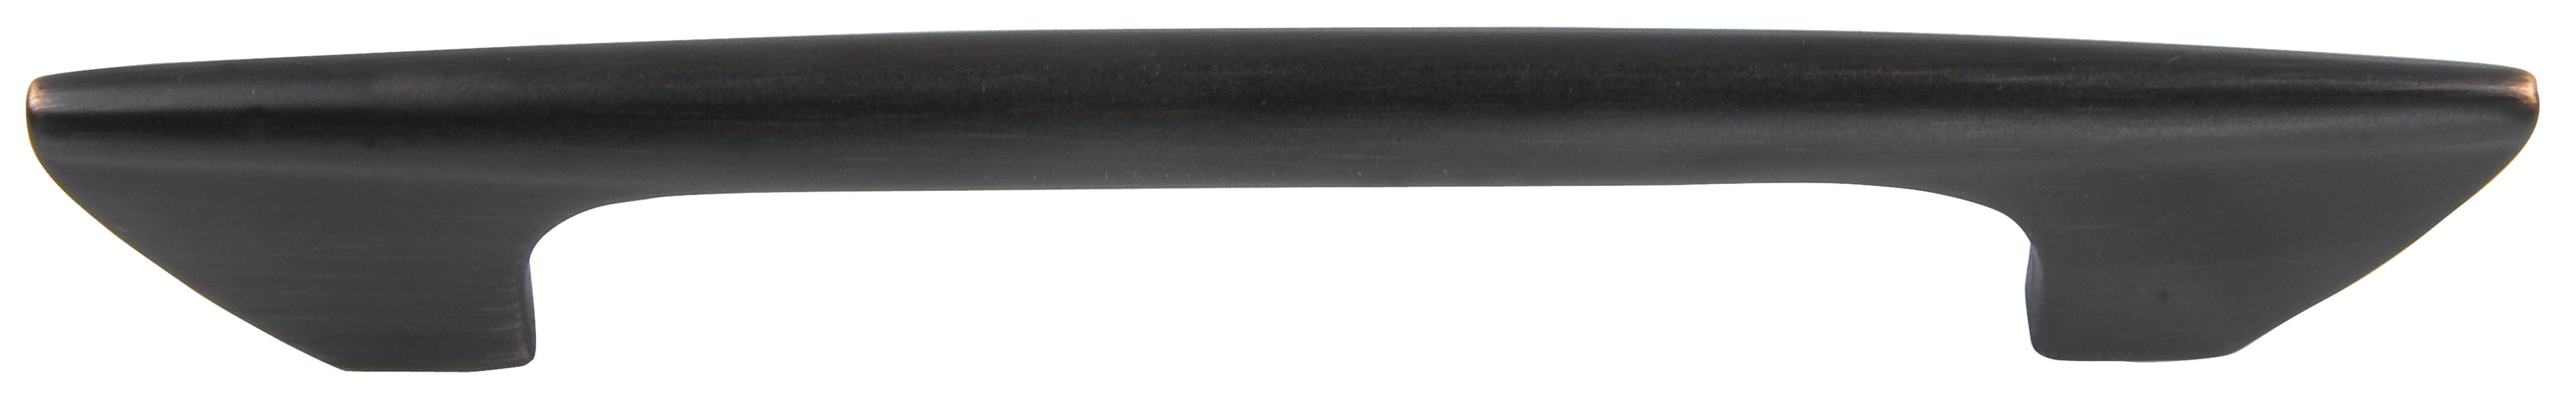 Atlas Homewares A803 Successi 3-3/4 Inch Center to Center Handle Cabinet Pull